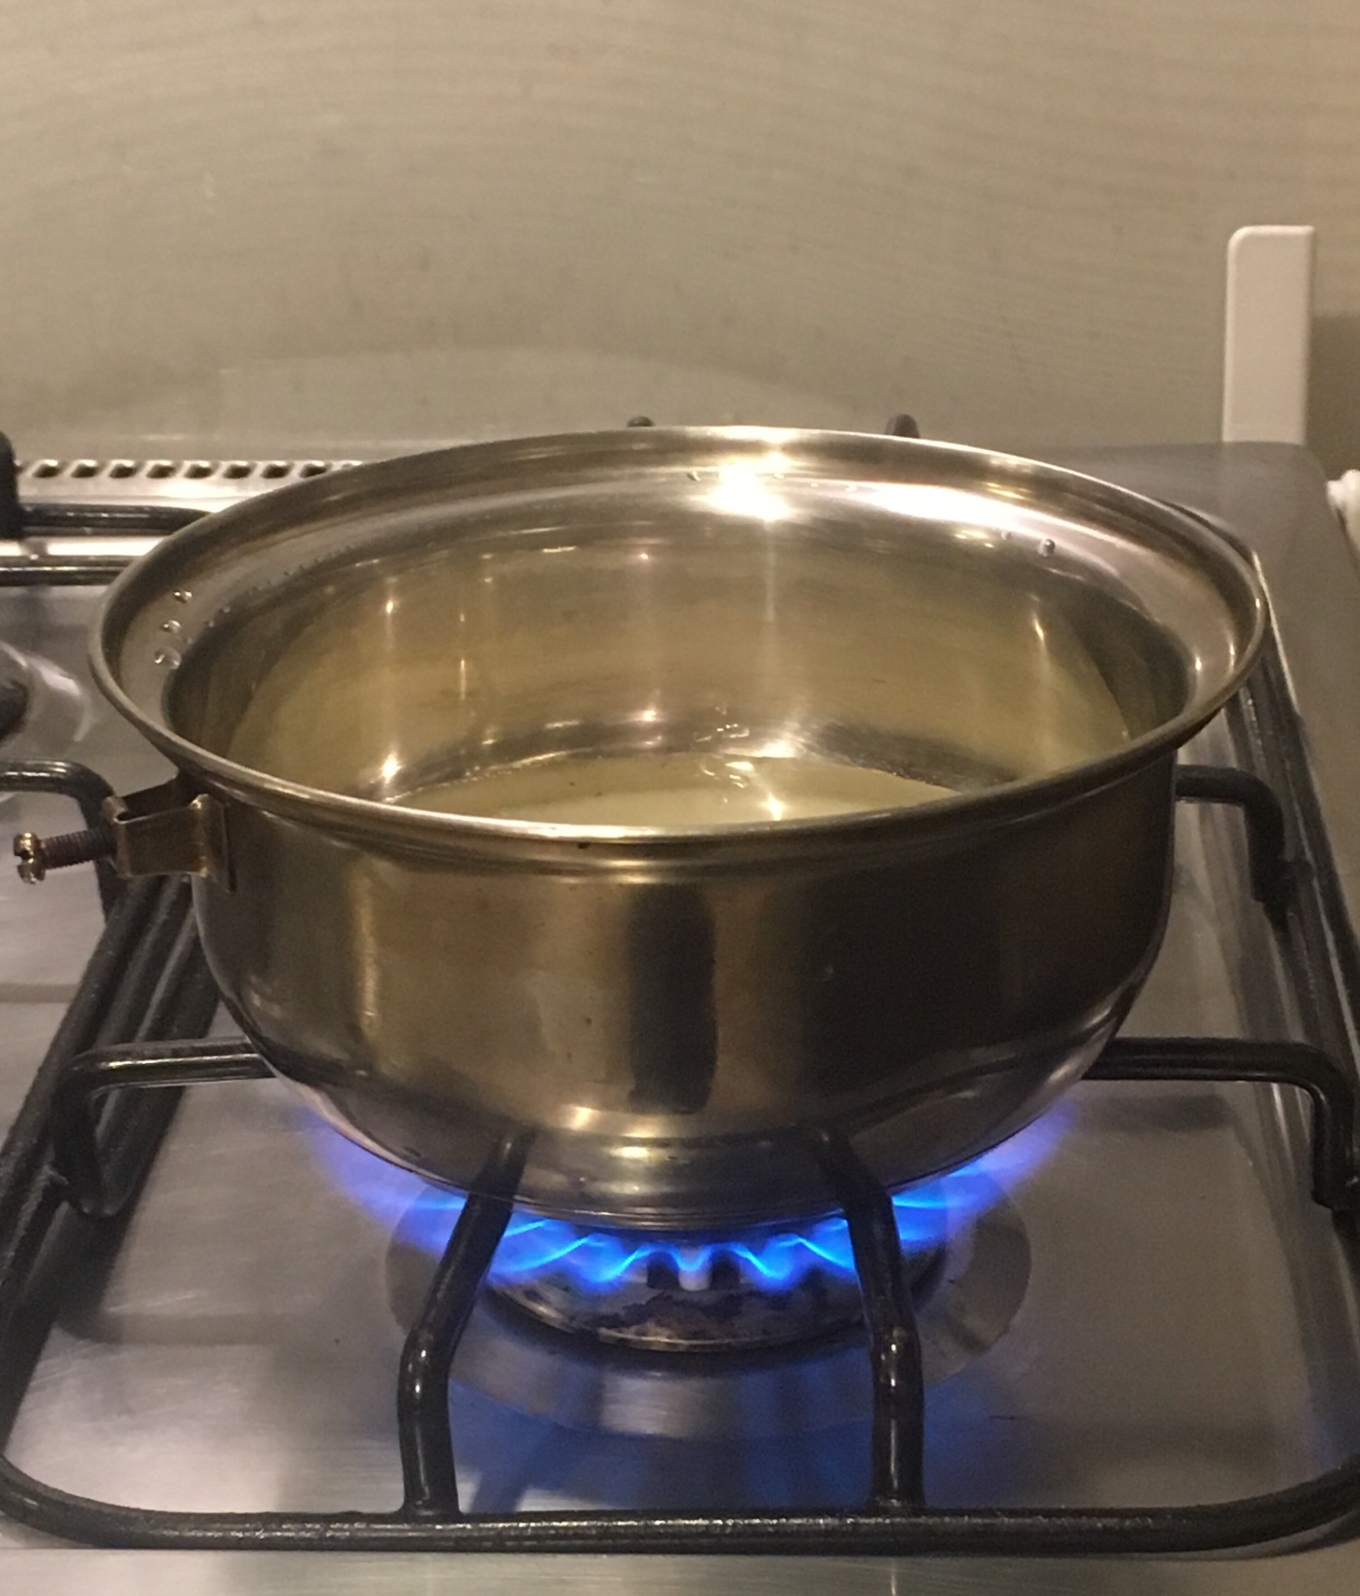 A pot over a burner containing sugar and water.